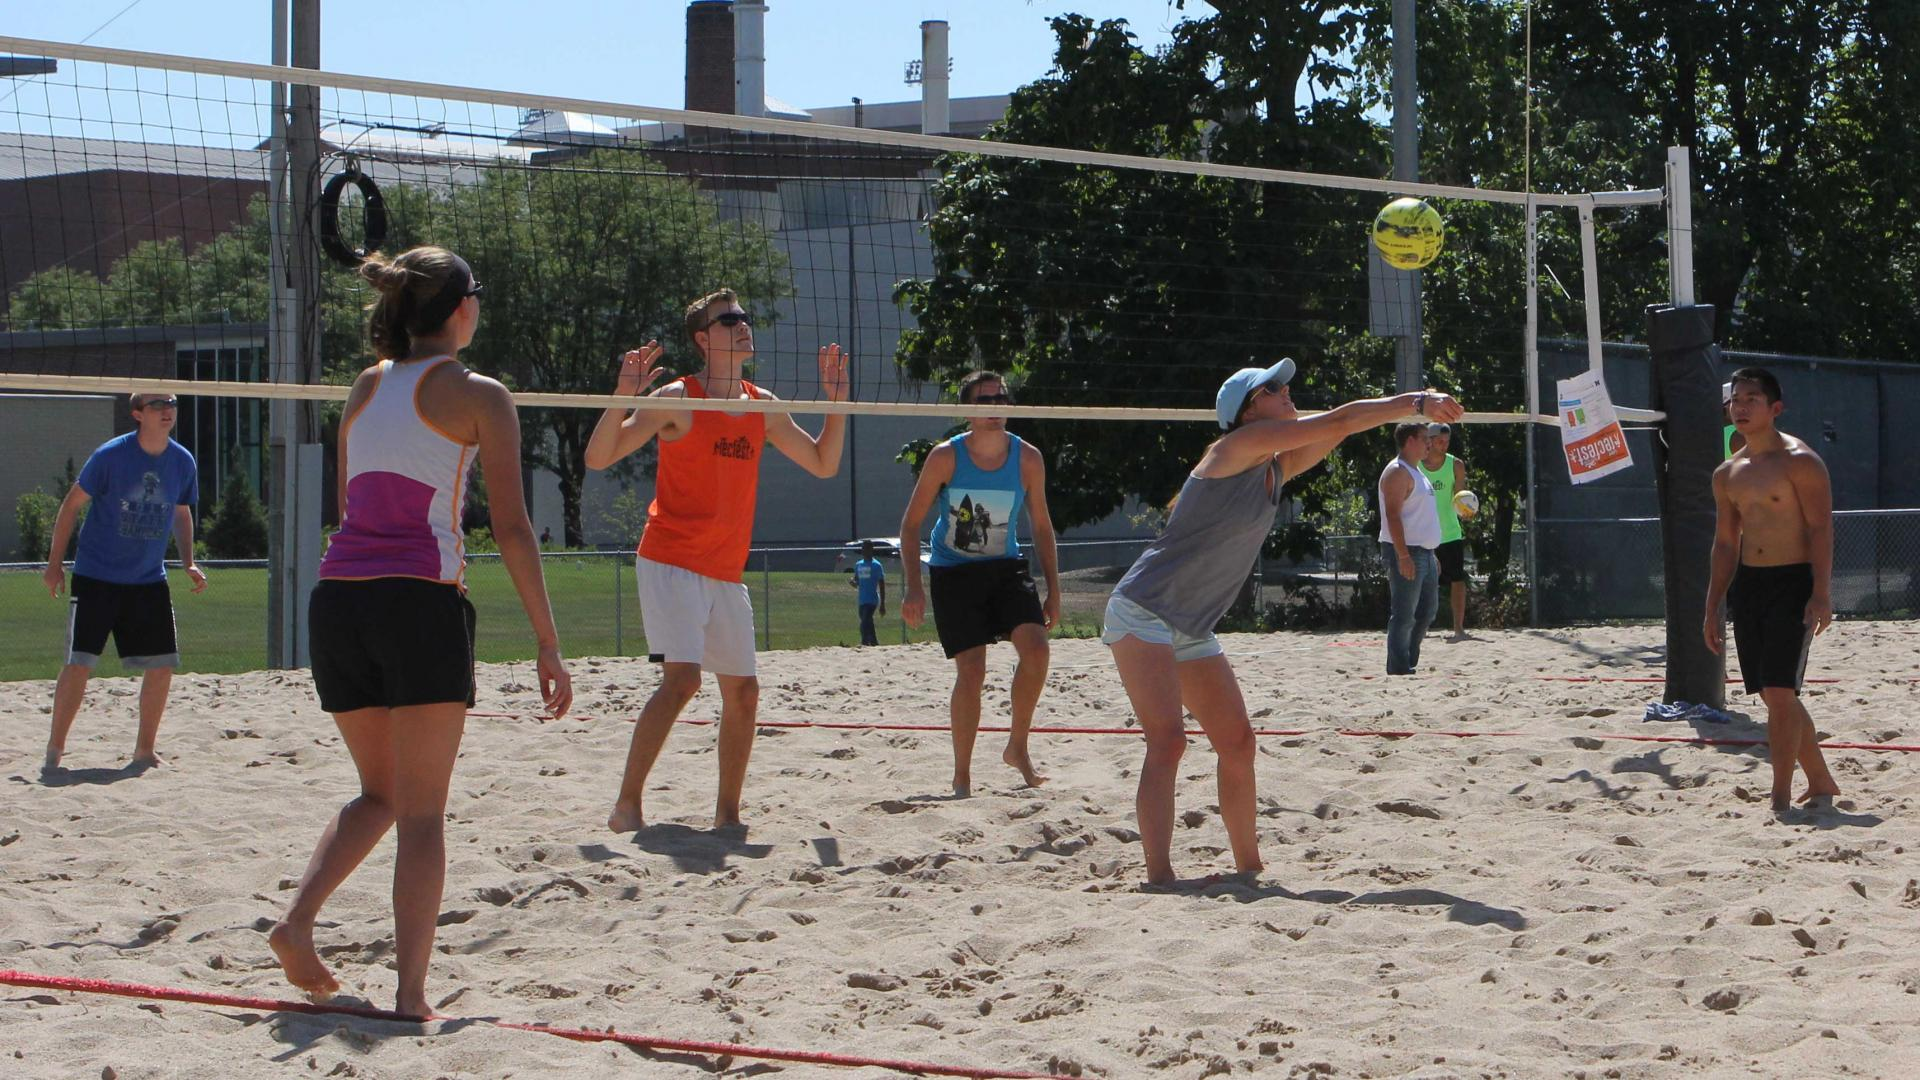 Students play intramural sand volleyball